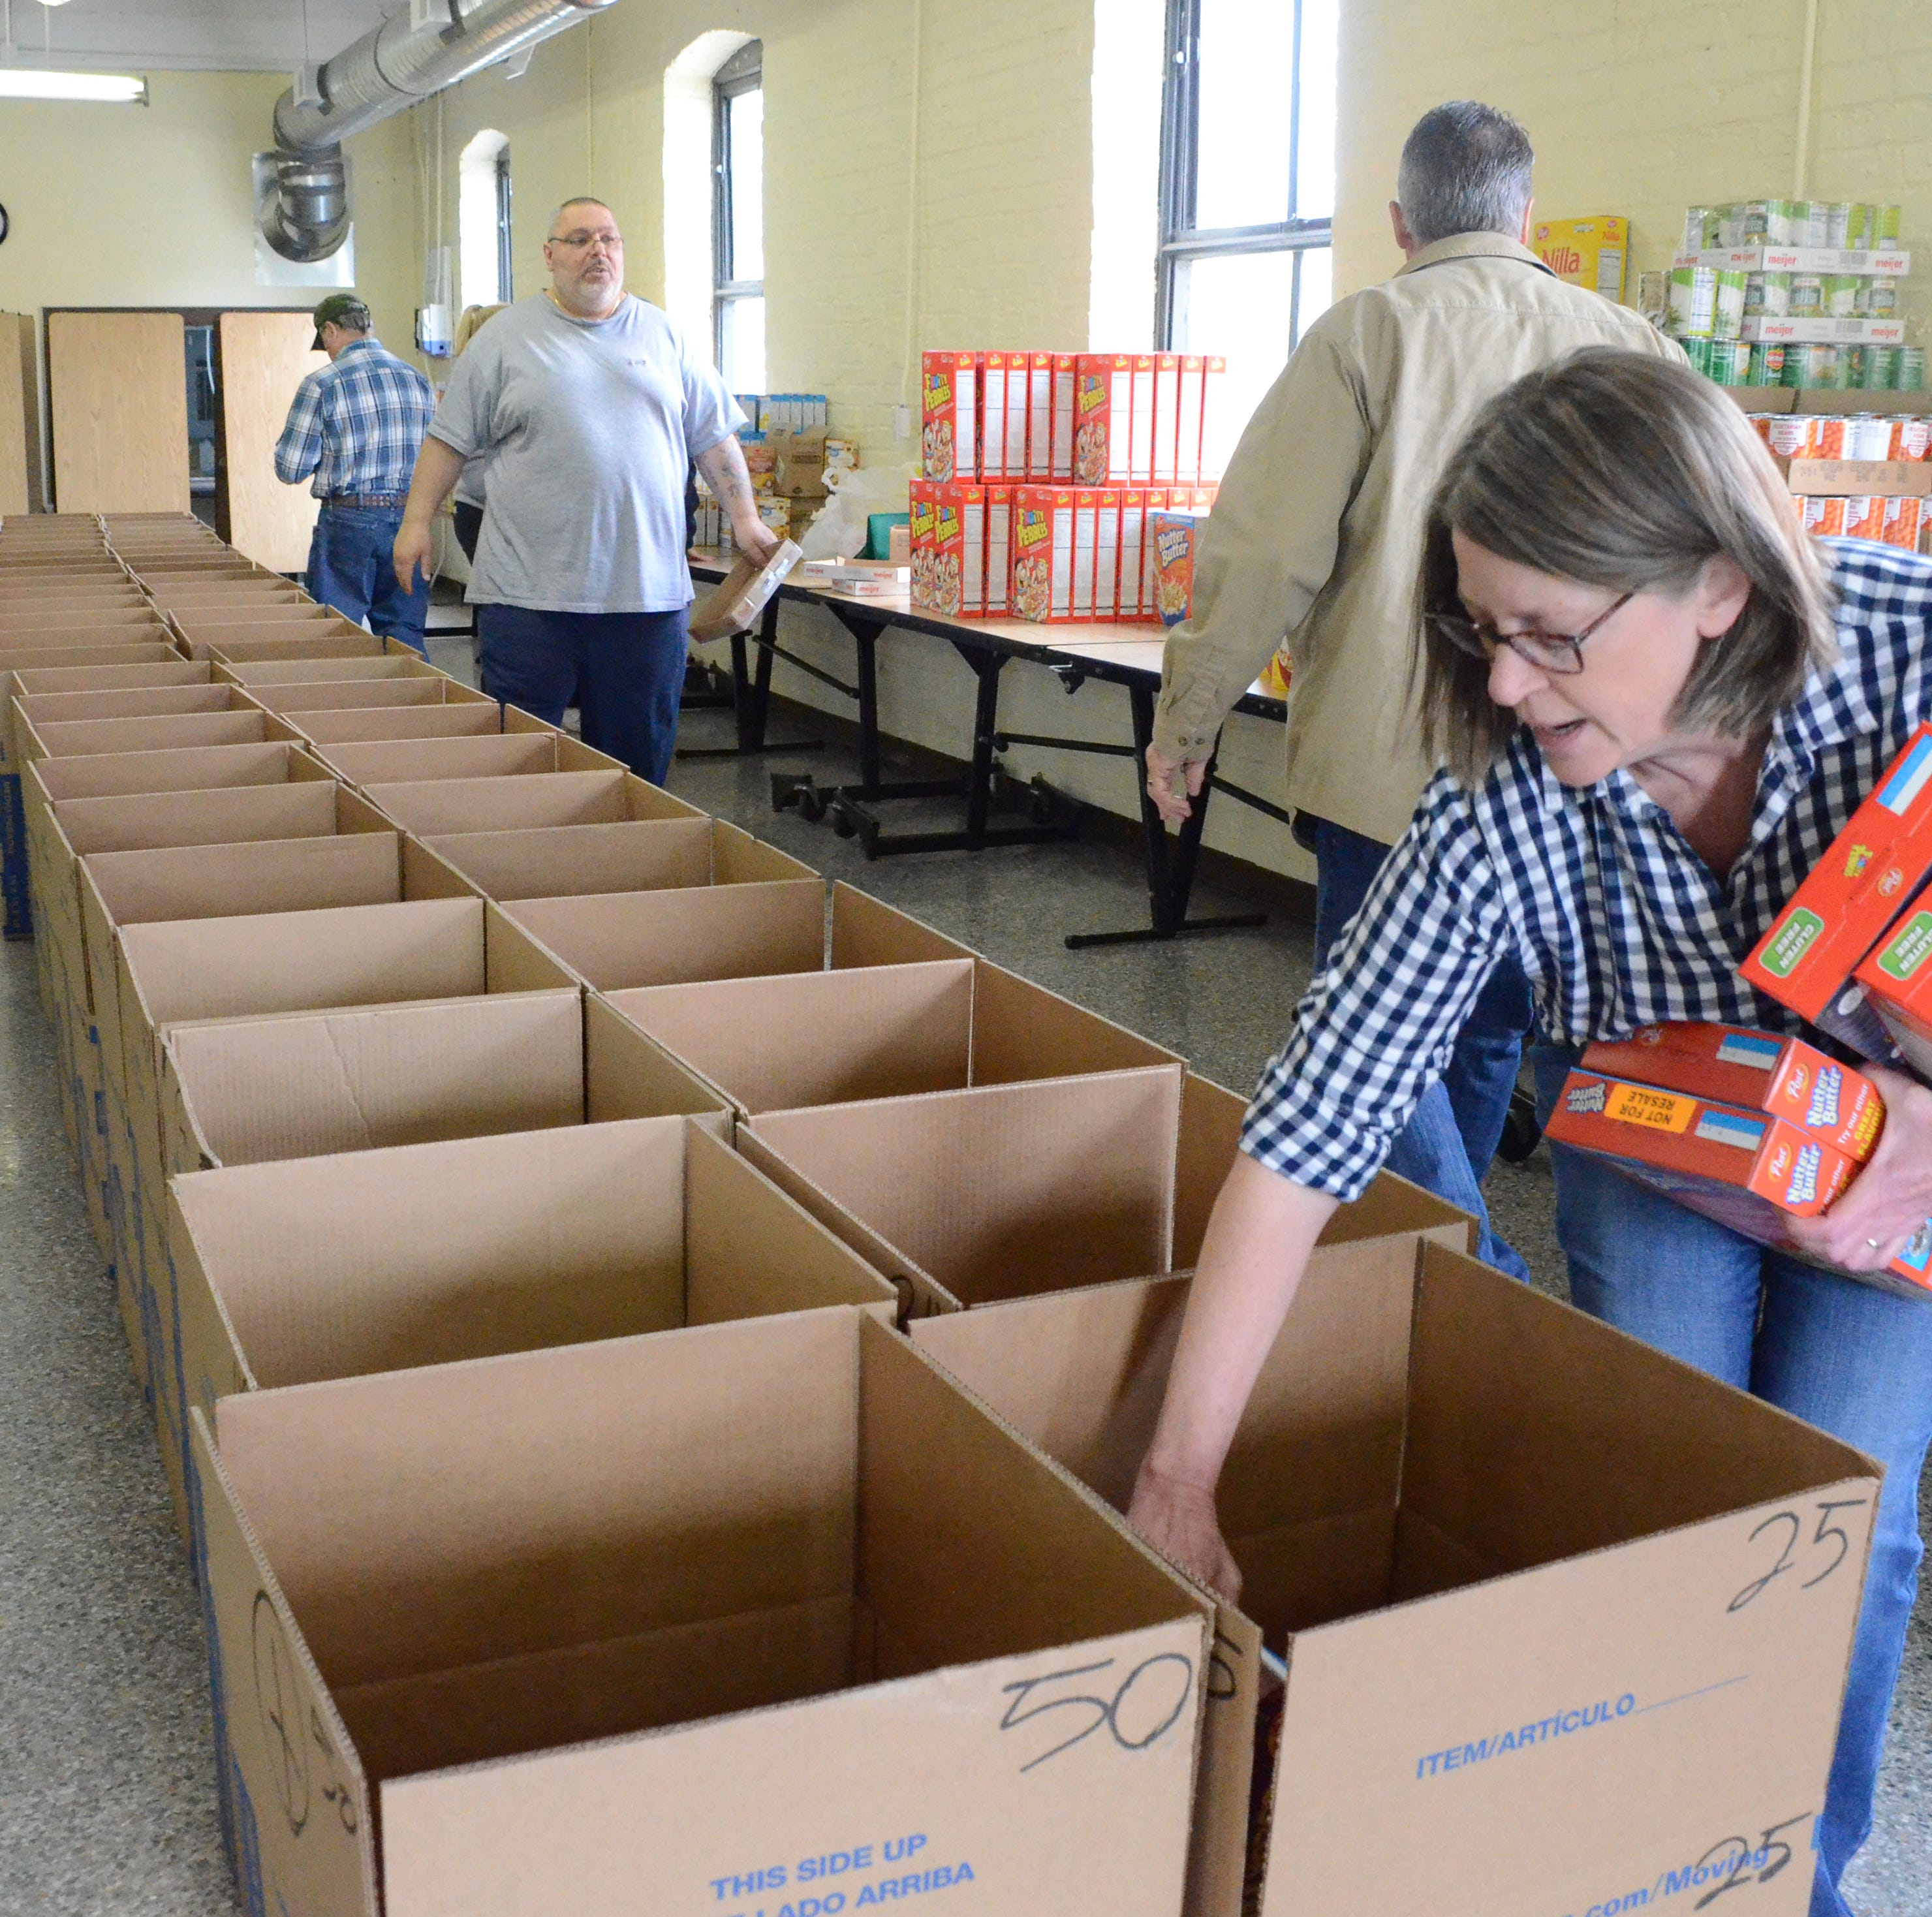 Easter boxes of food and candy distributed to Battle Creek families